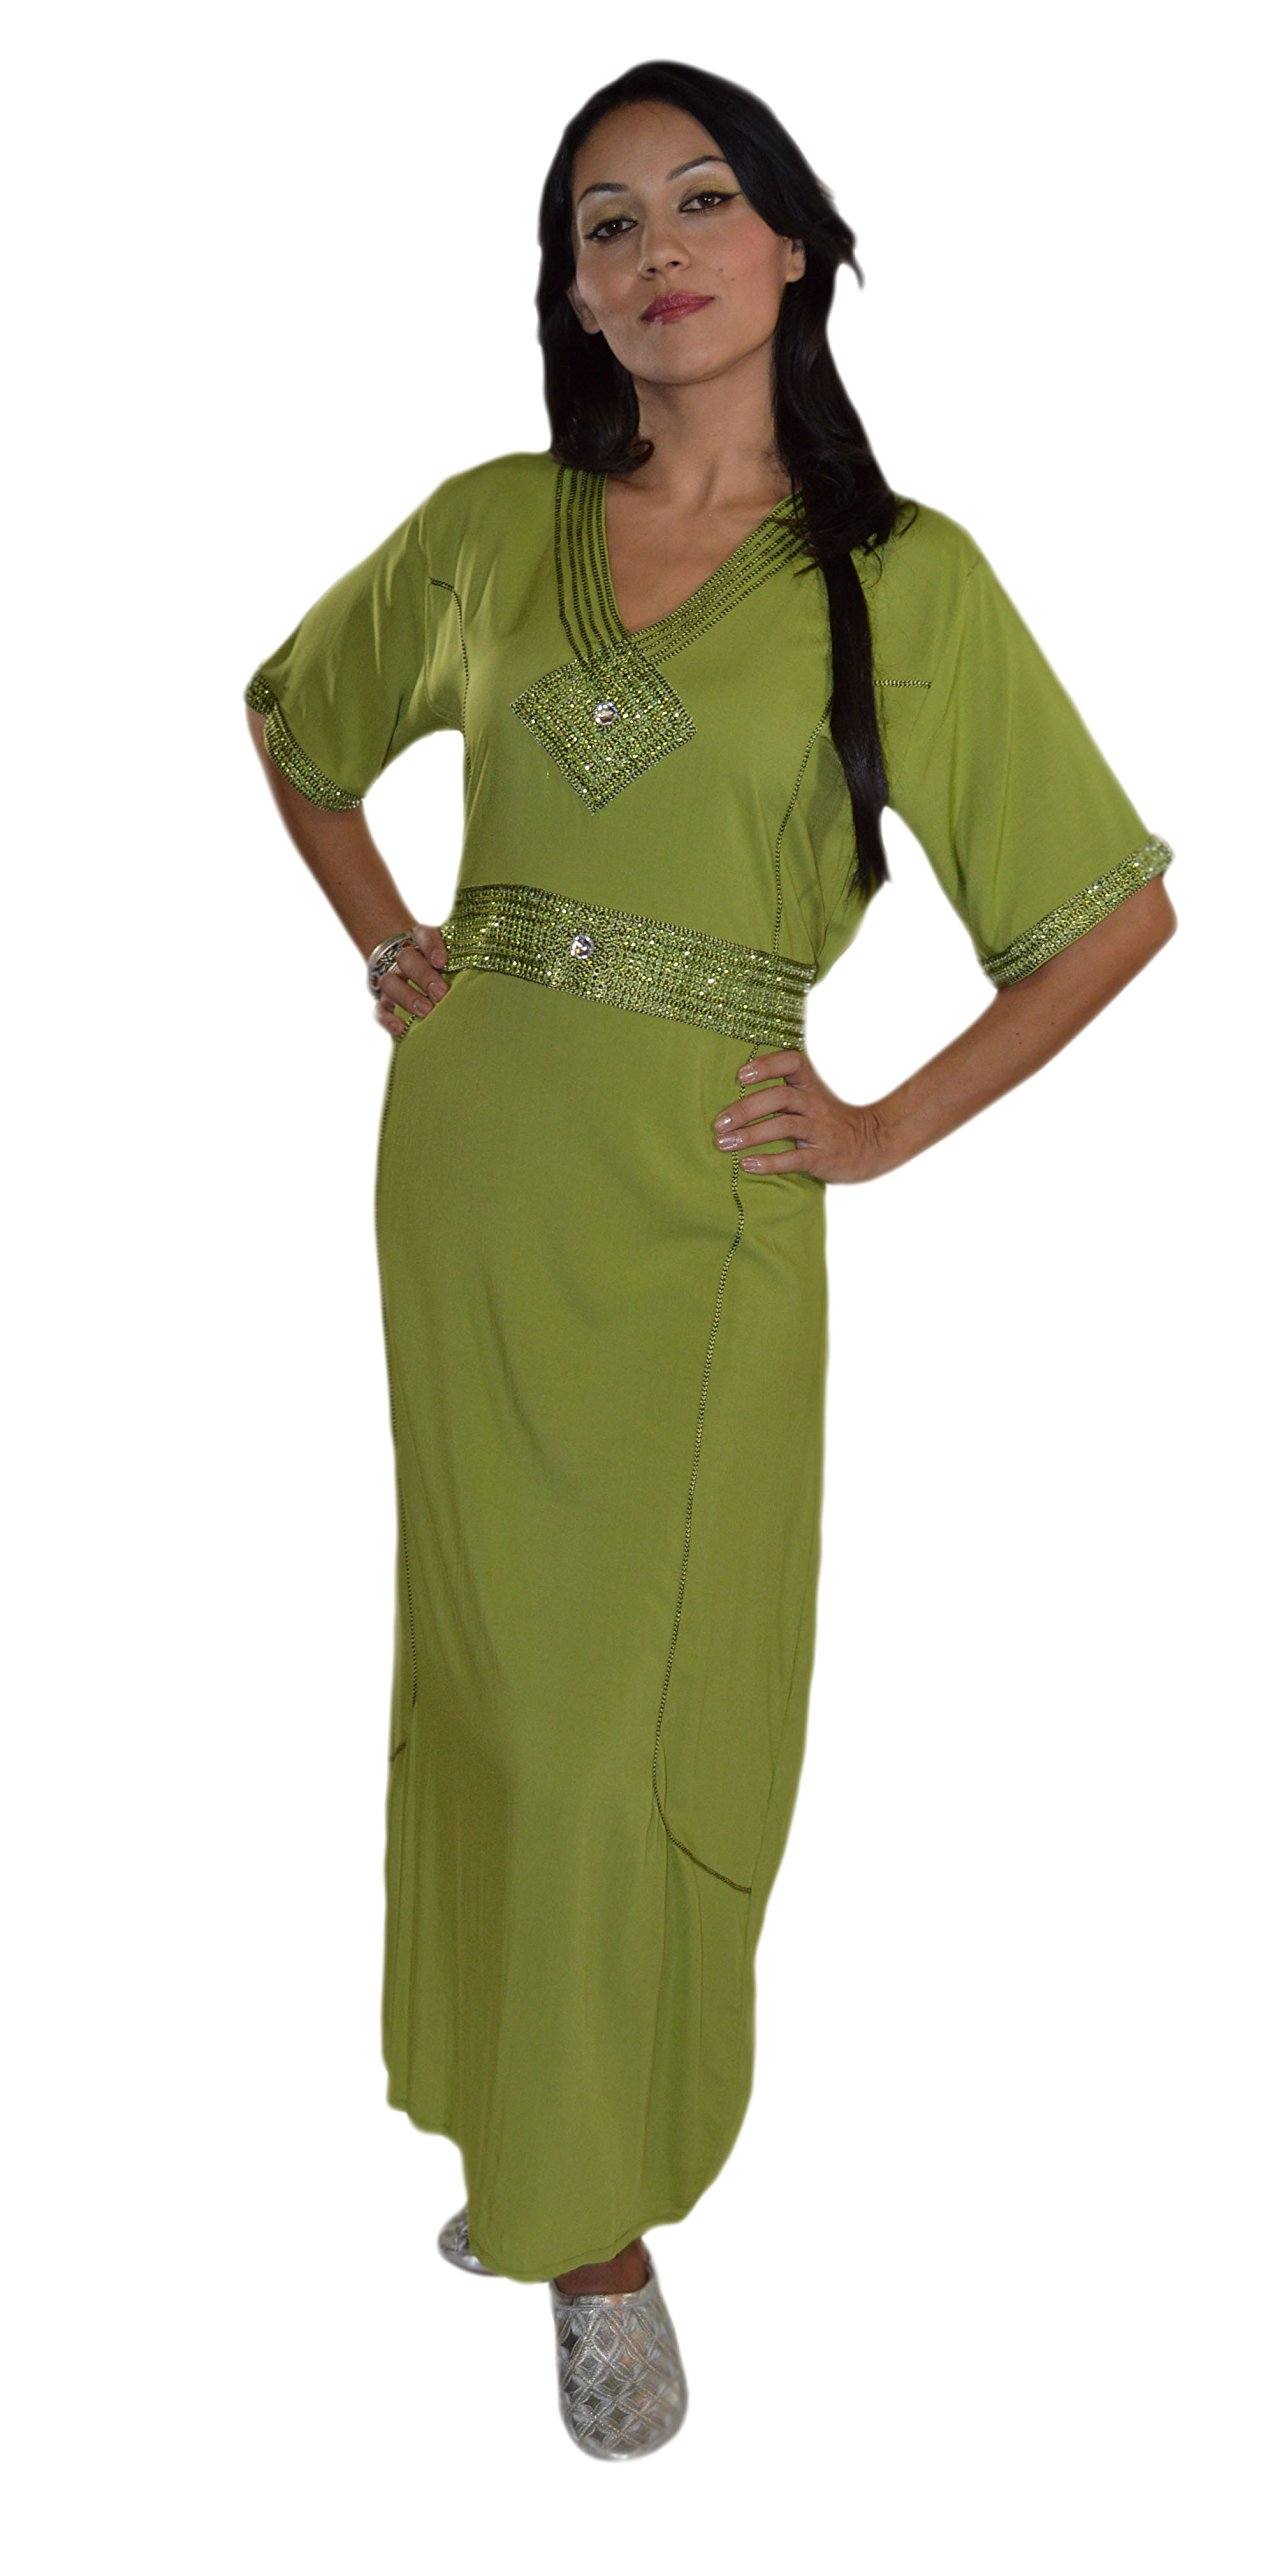 Moroccan Caftan Handmade Light Weight Cotton Embroidery Fits SMALL to MEDIUM Green